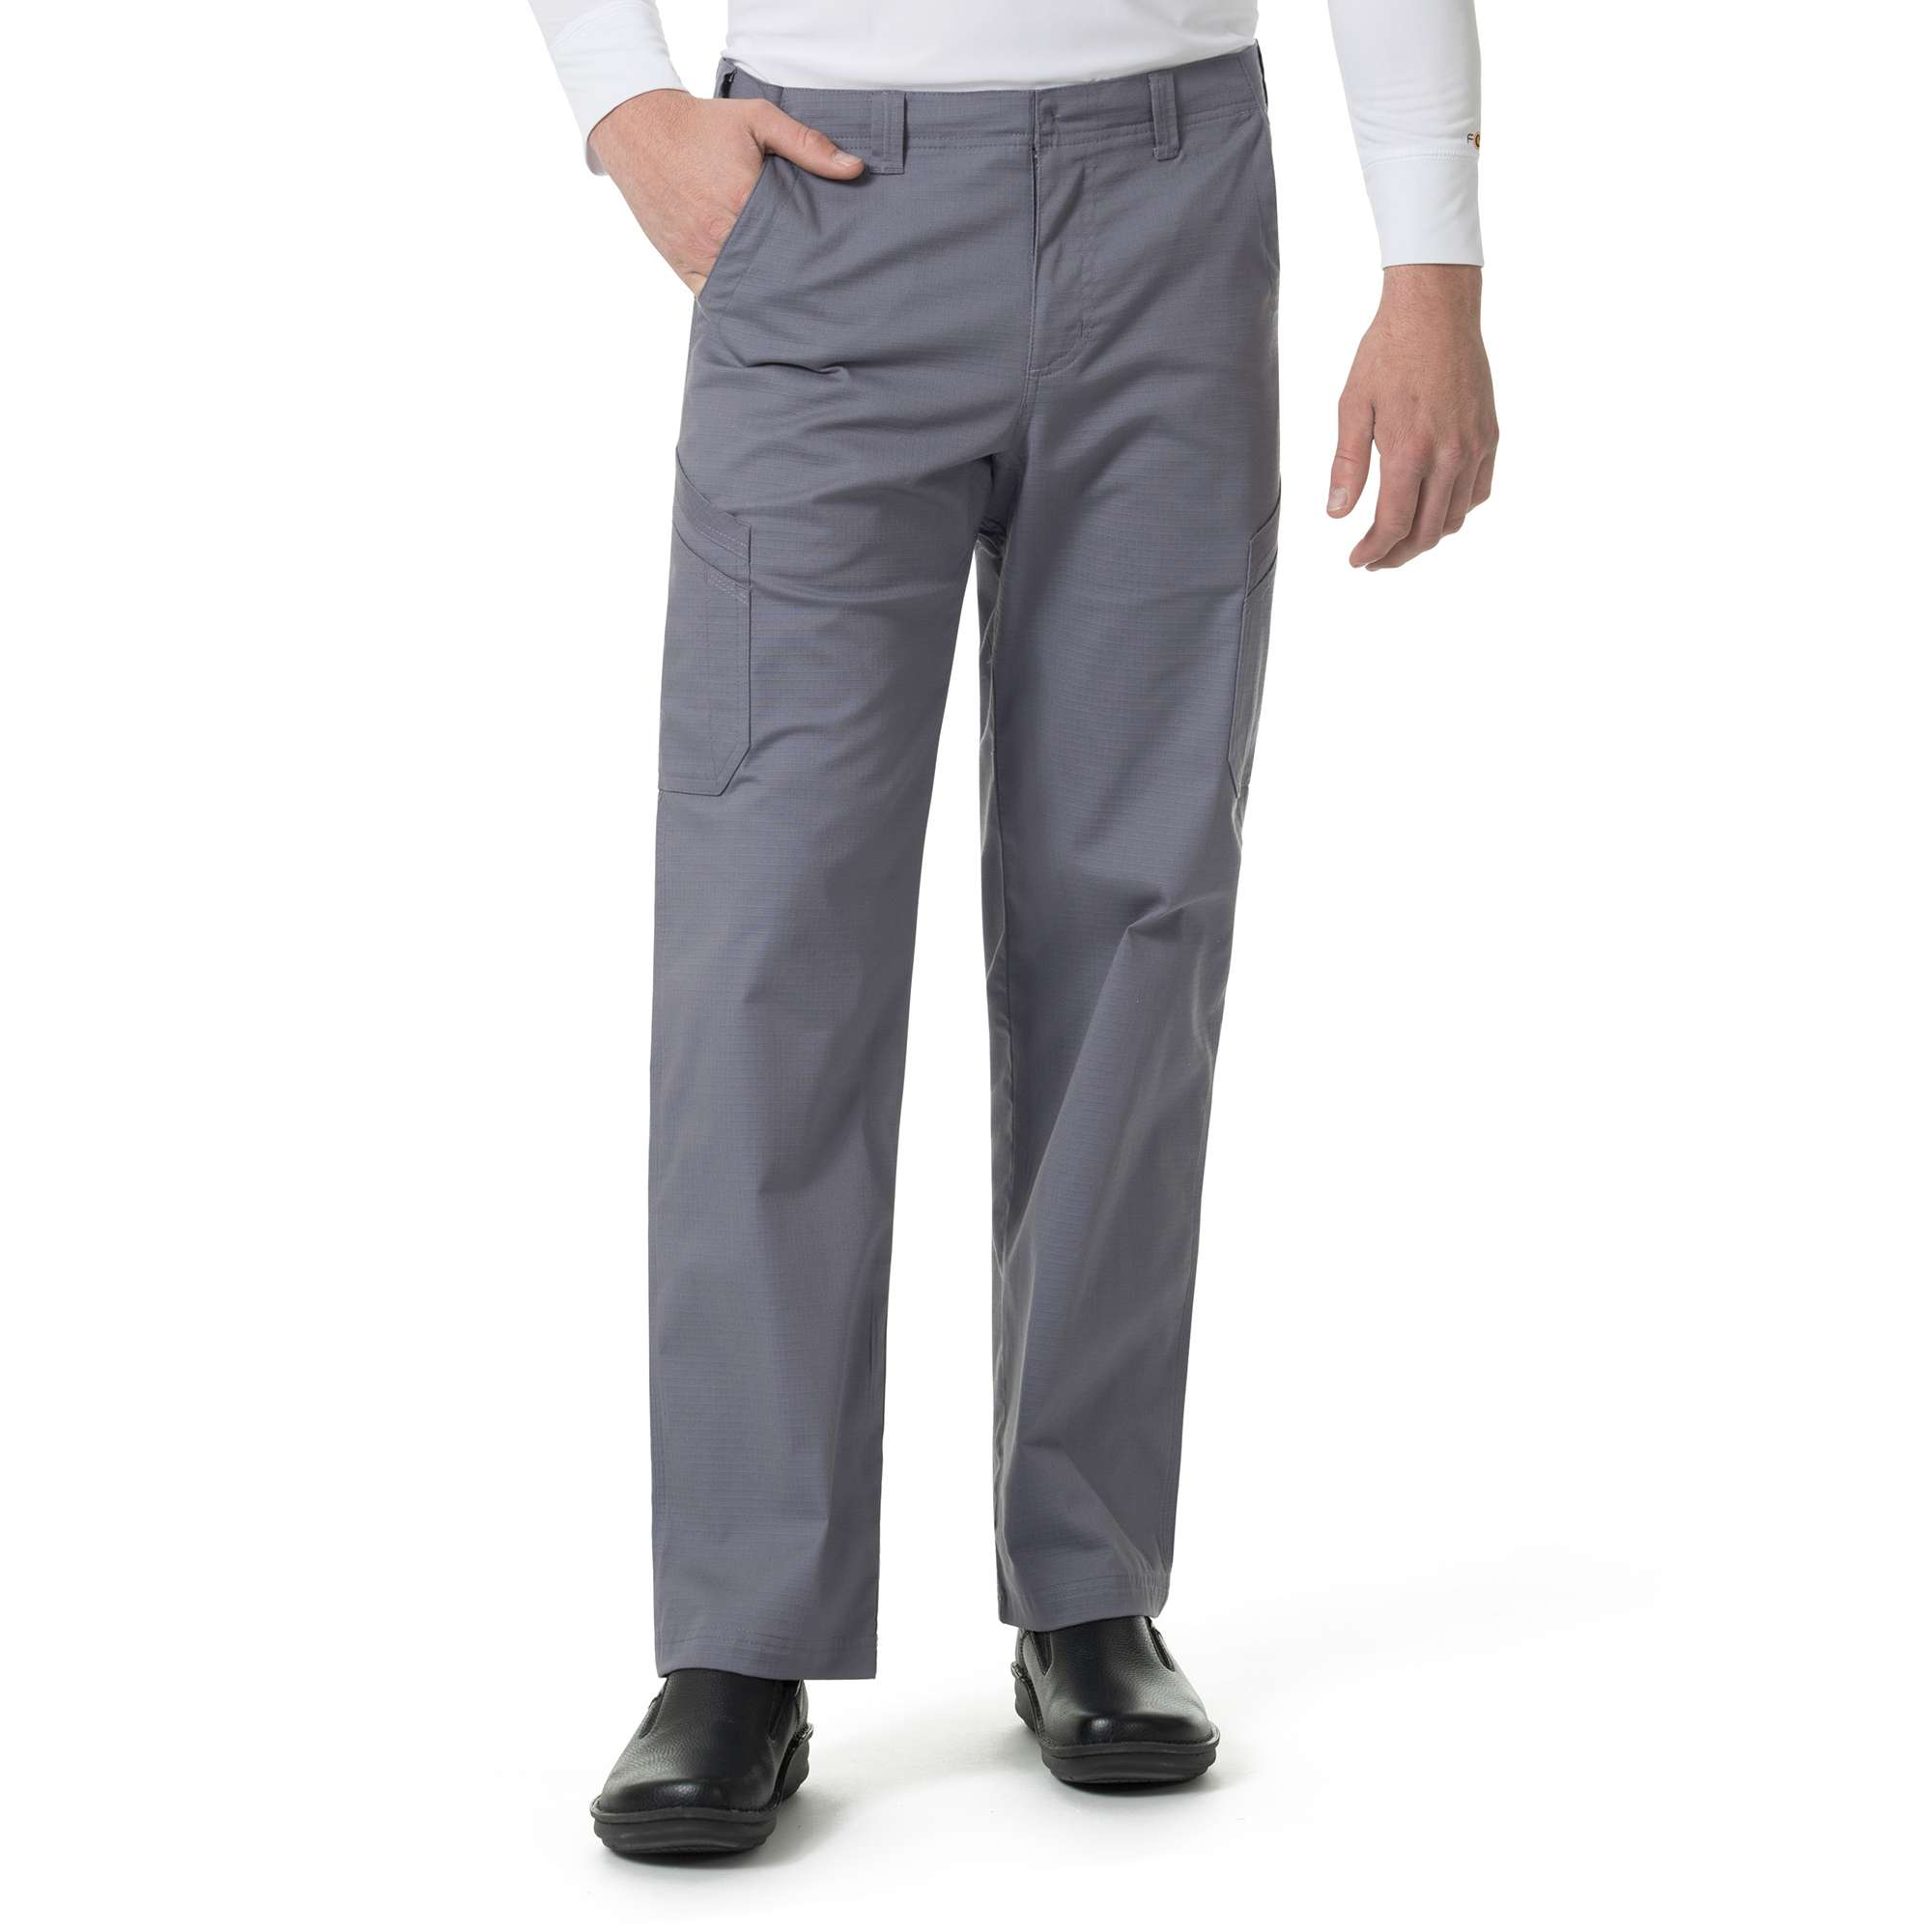 STRAIGHT FIT MULTI-CARGO SCRUB PANT